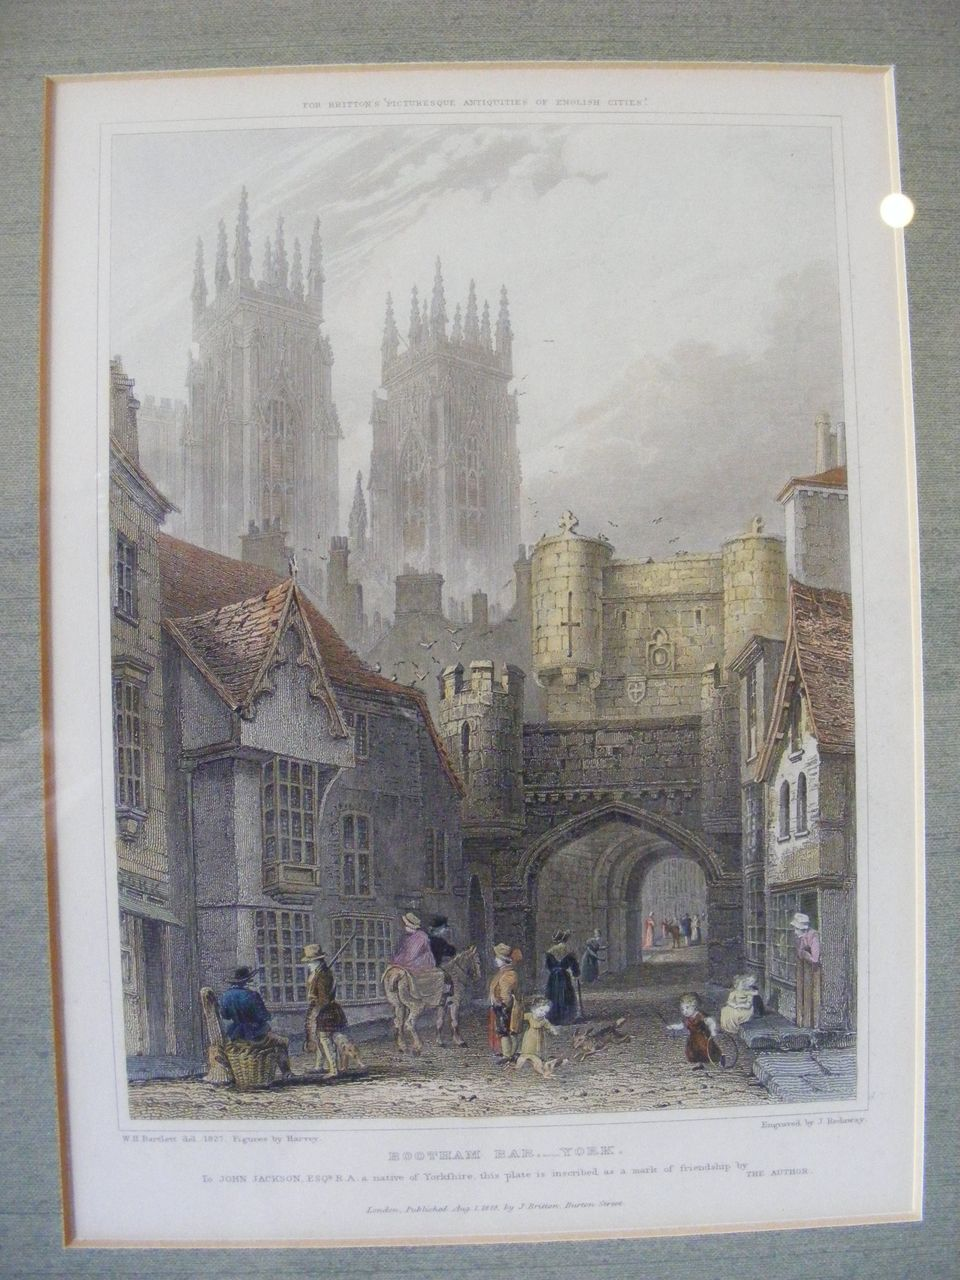 Framed Hand Colored Engraving 1828 Bootham Bar, York